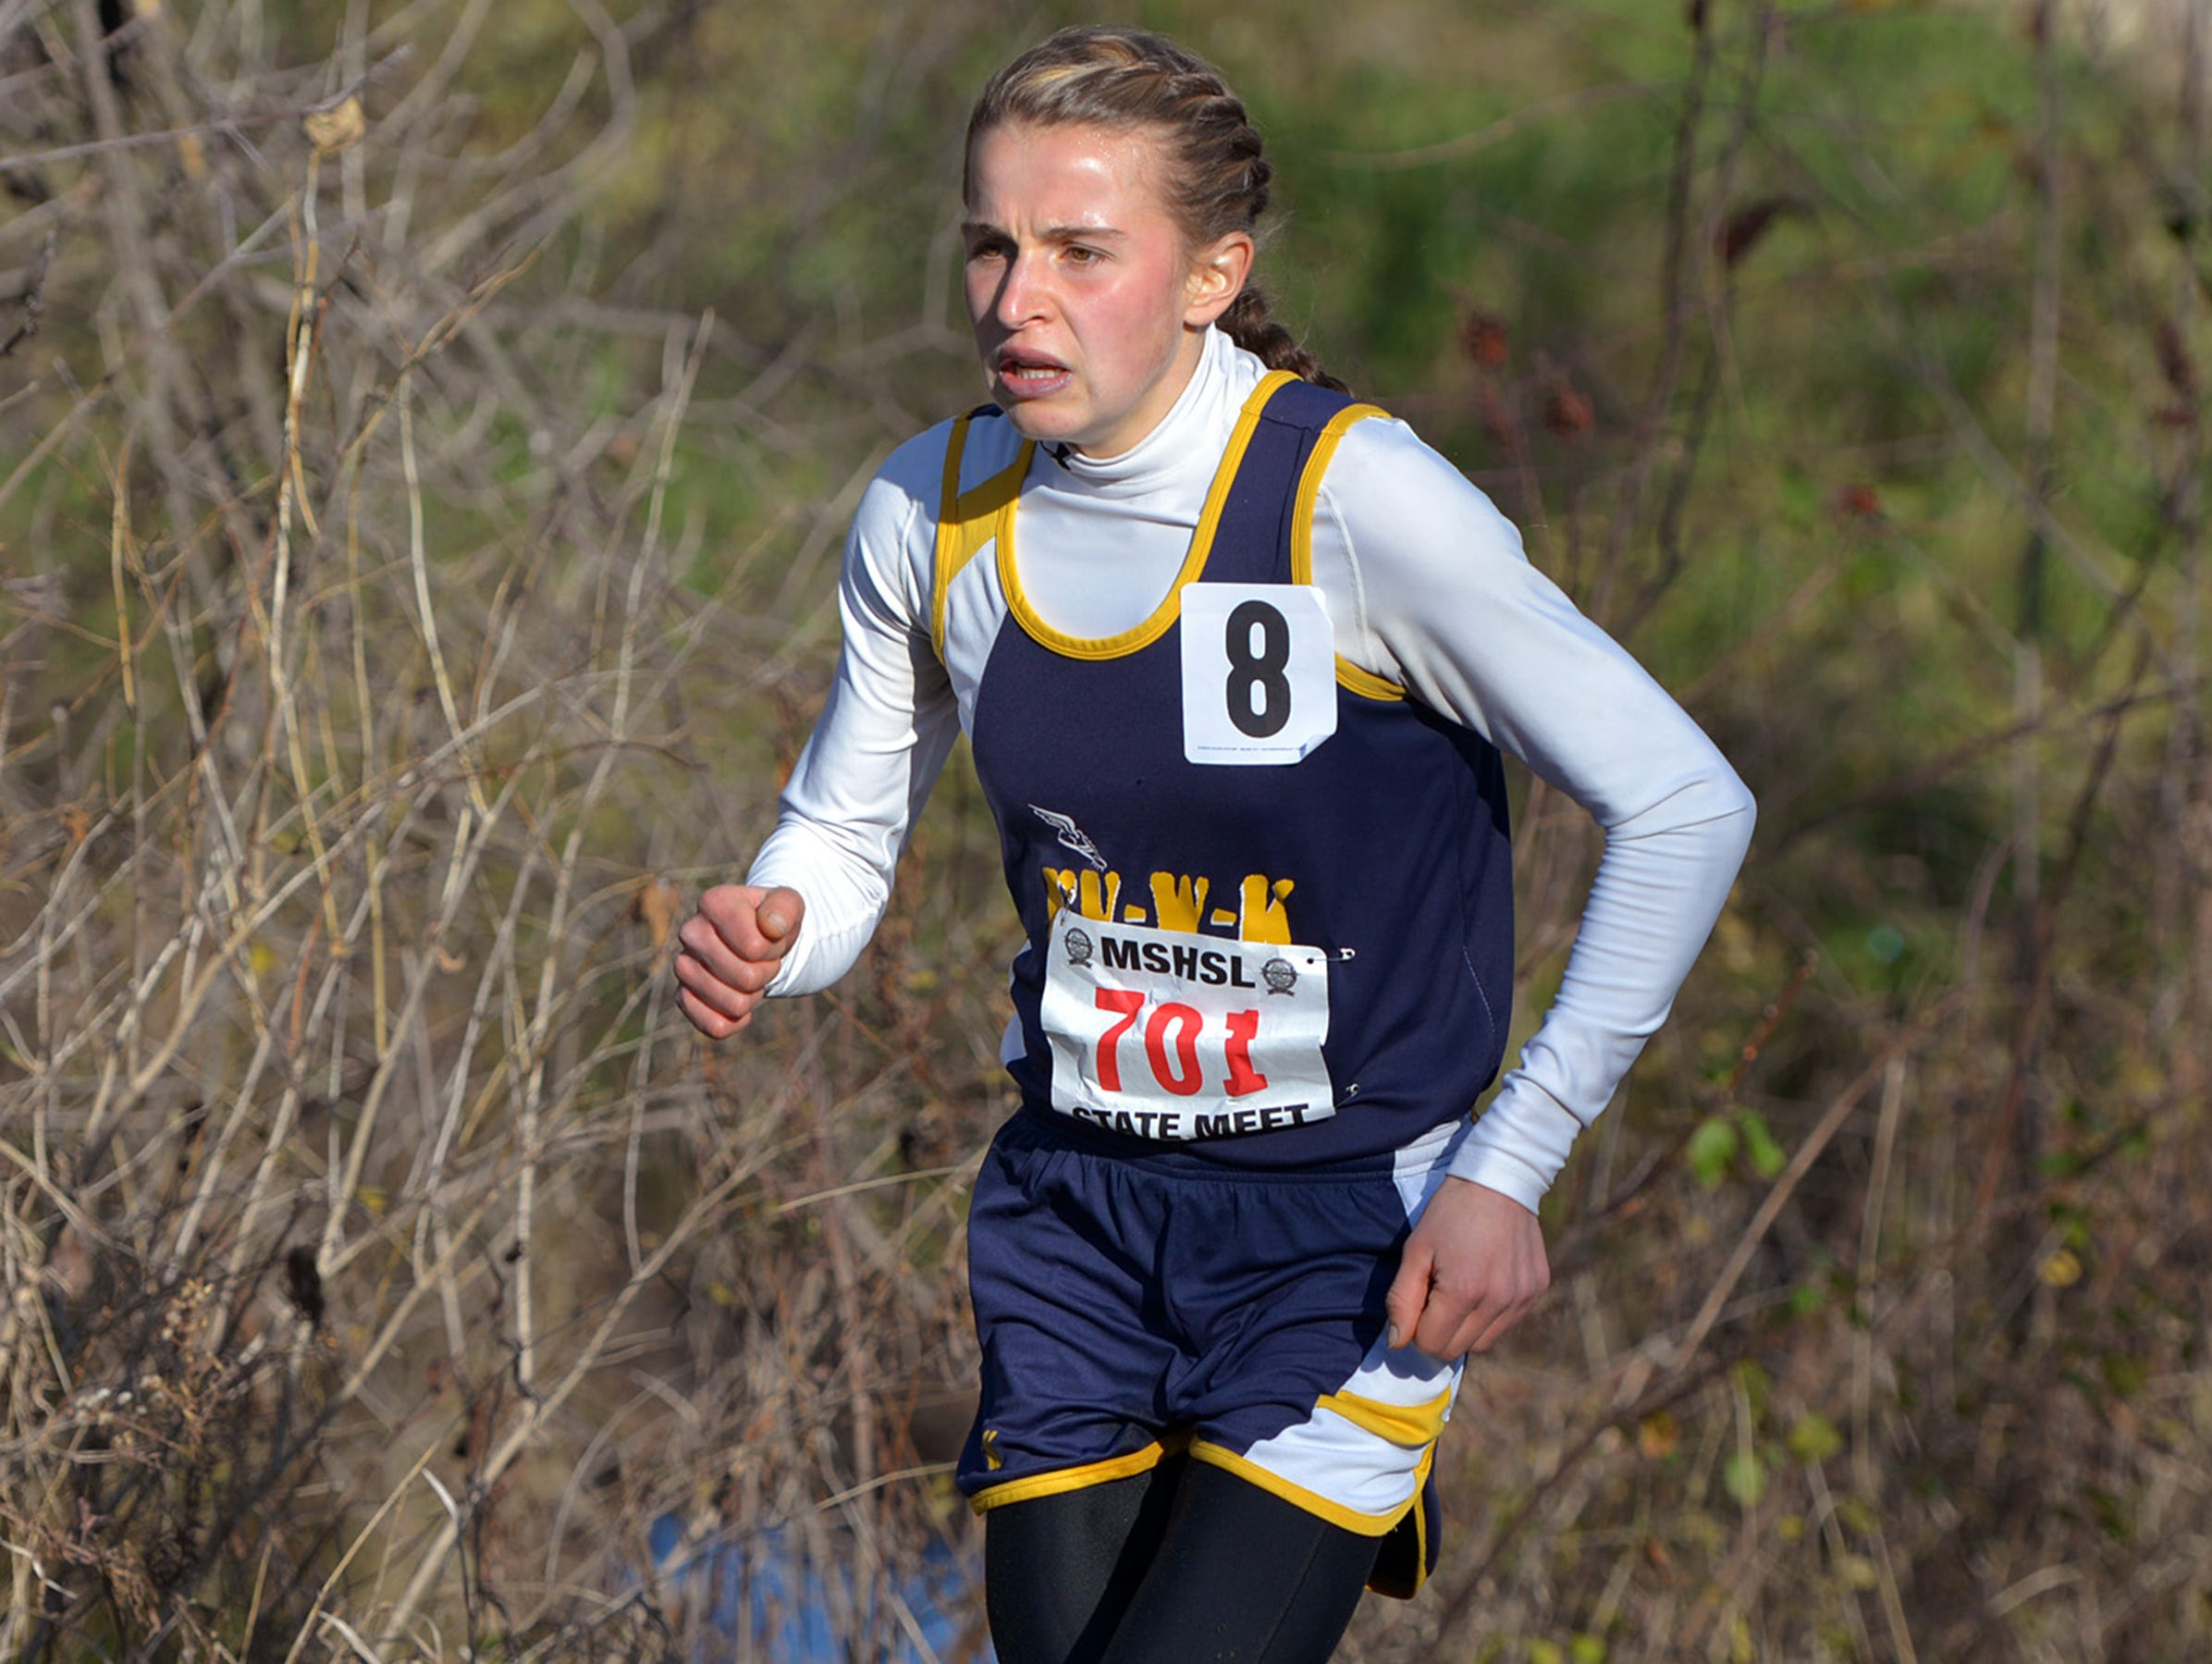 Eden Valley-Watkins/Kimball Area junior Anna Donnay paces herself up a hill during the girls' Class A state cross country championship race Saturday, Nov. 7 at St. Olaf College in Northfield. Donnay finished in 19:19.6 in seventh place.